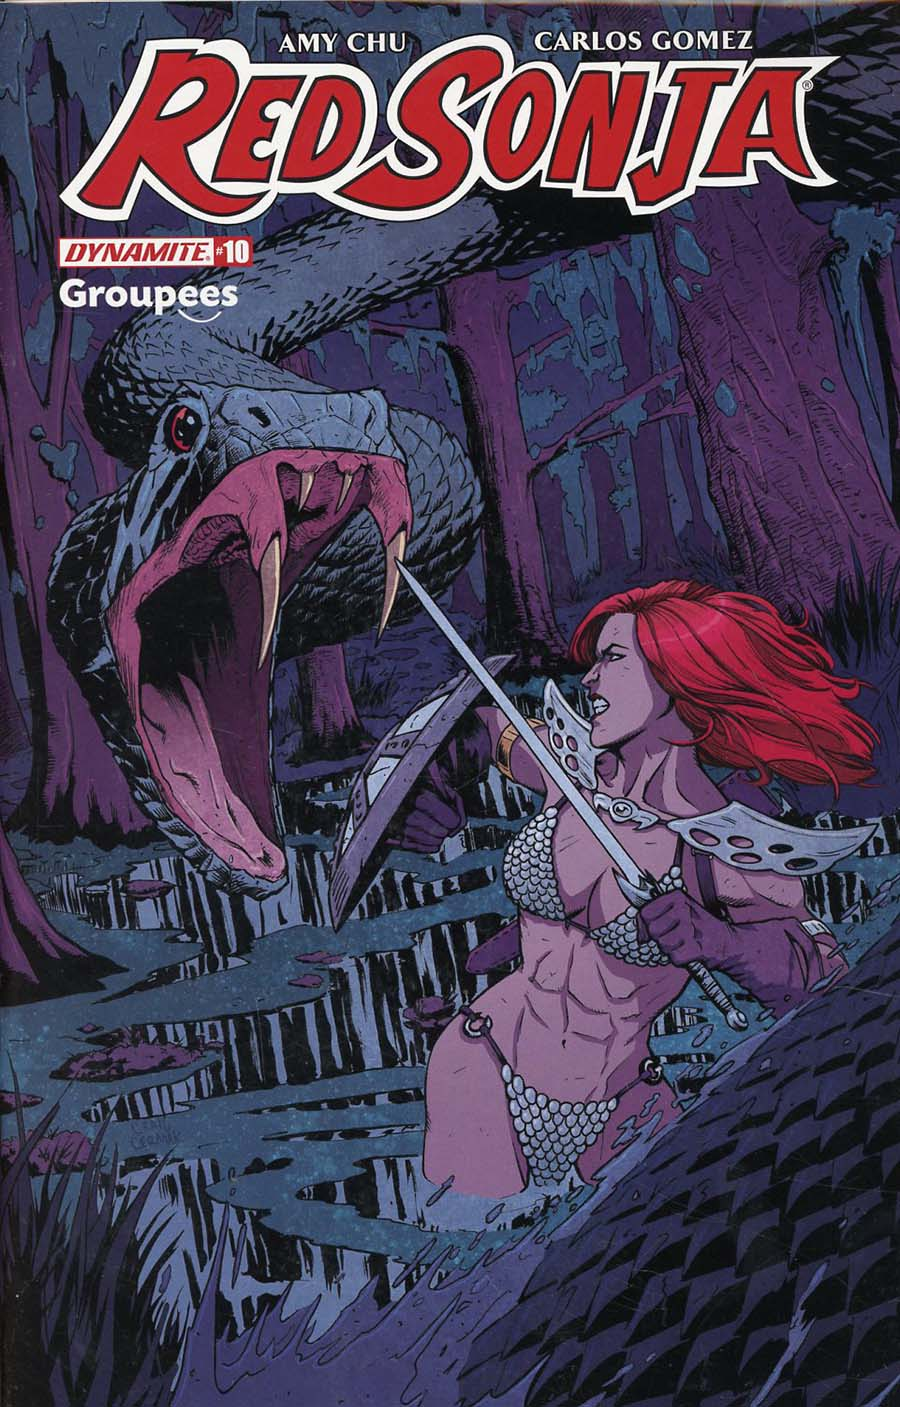 Red Sonja Vol 7 #10 Cover I Groupees Exclusive Craig Cermak Color Variant Cover